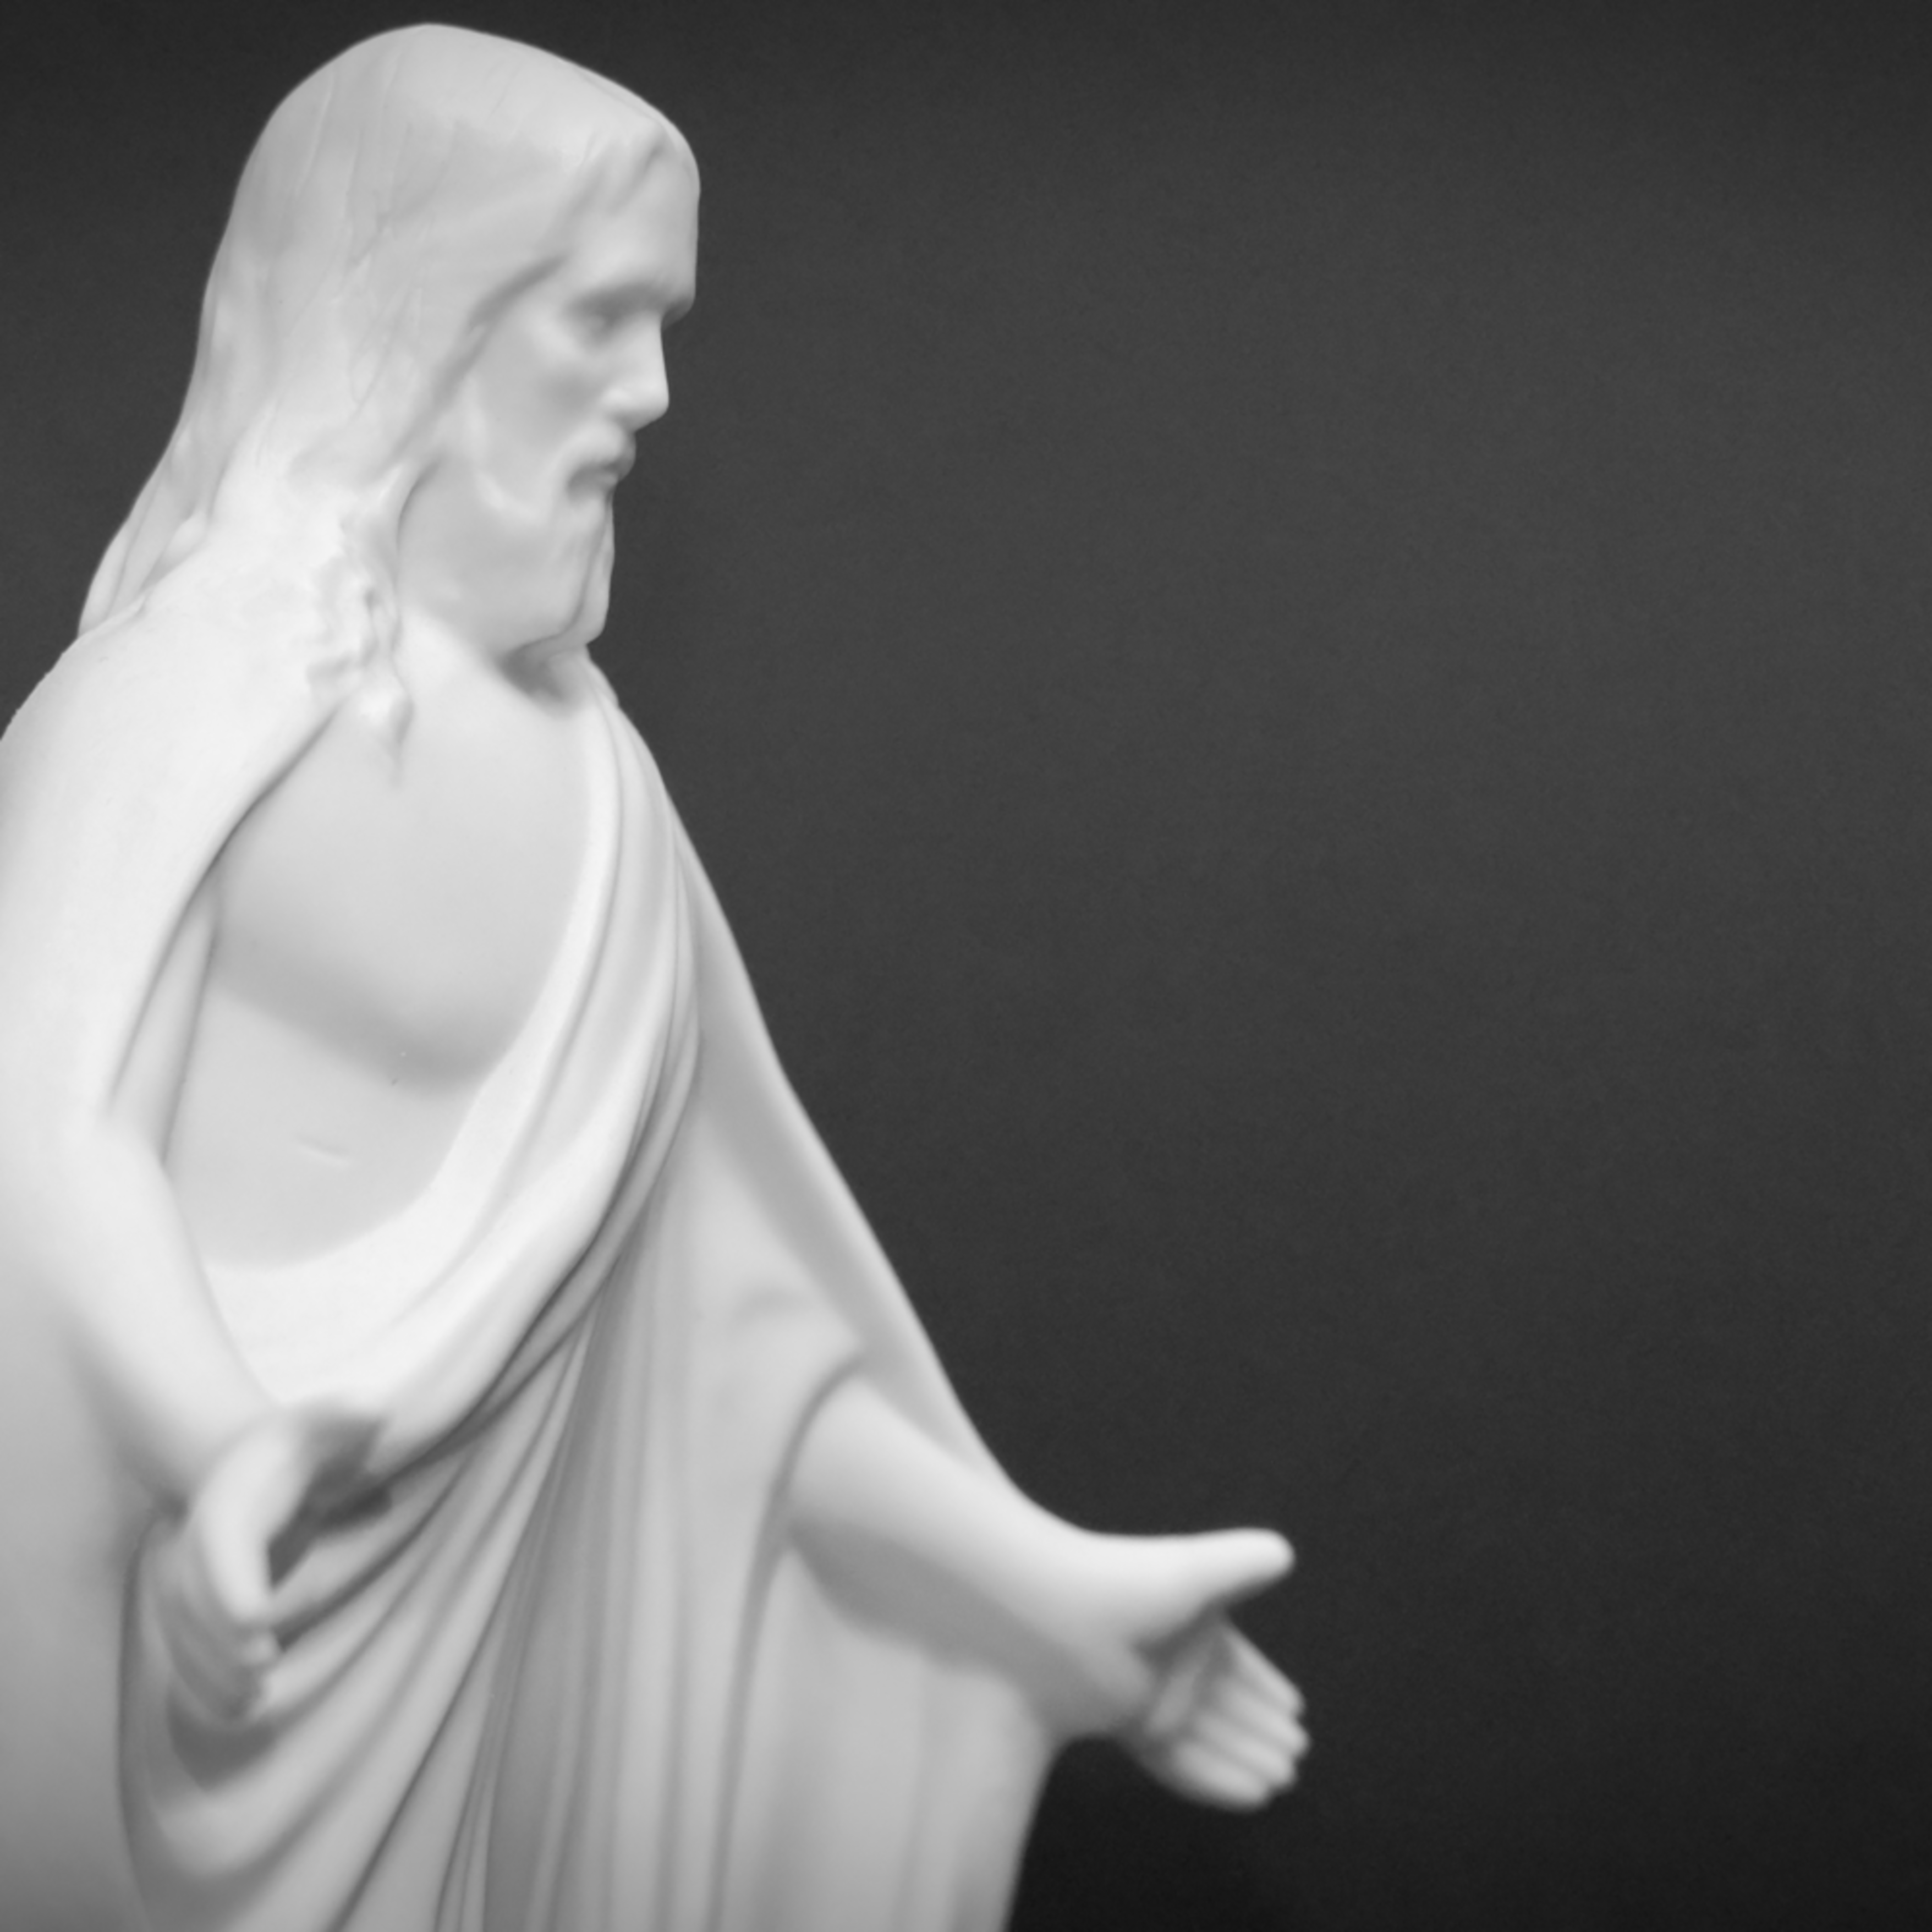 Black and white right side of jesus hnycs6